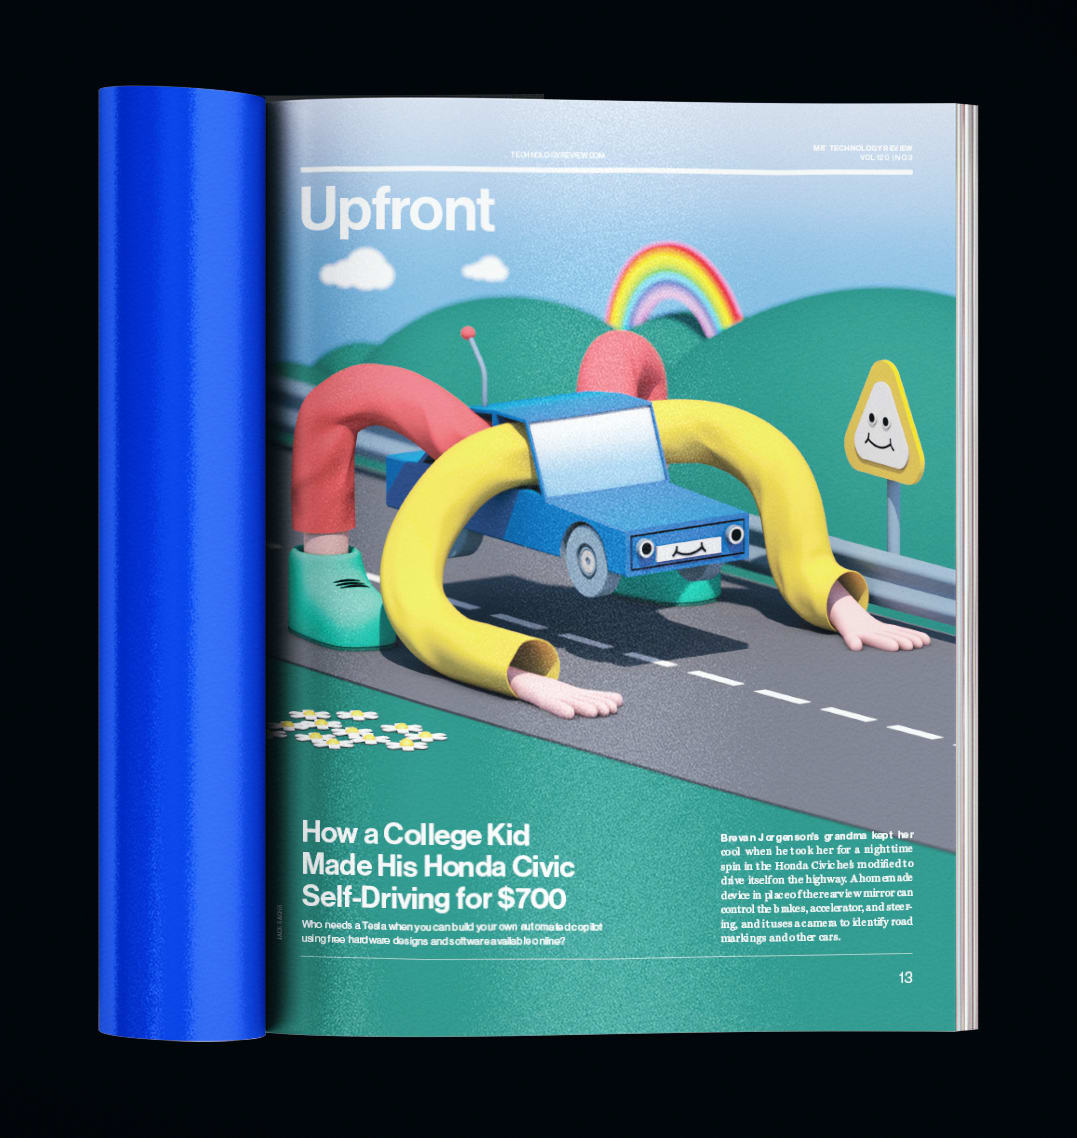 MIT Technology Review, Print Layout